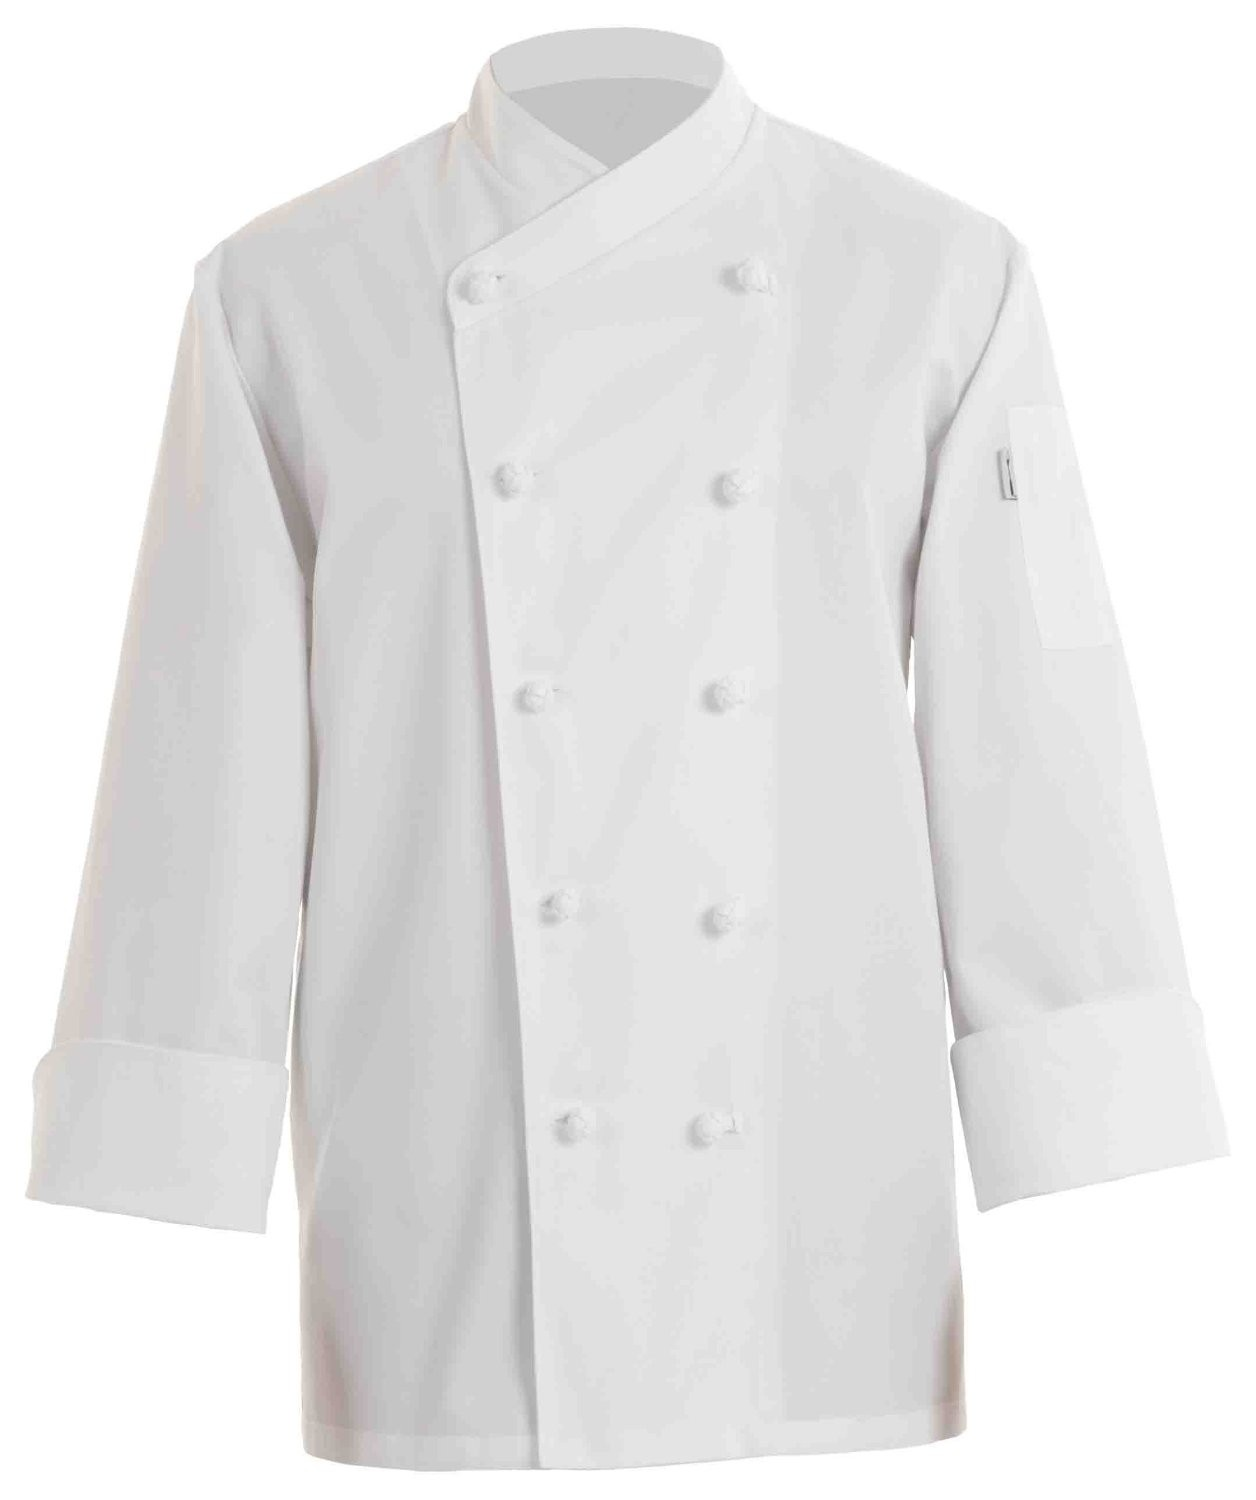 Chef Works COPK Nice Basic Chef Coat. White